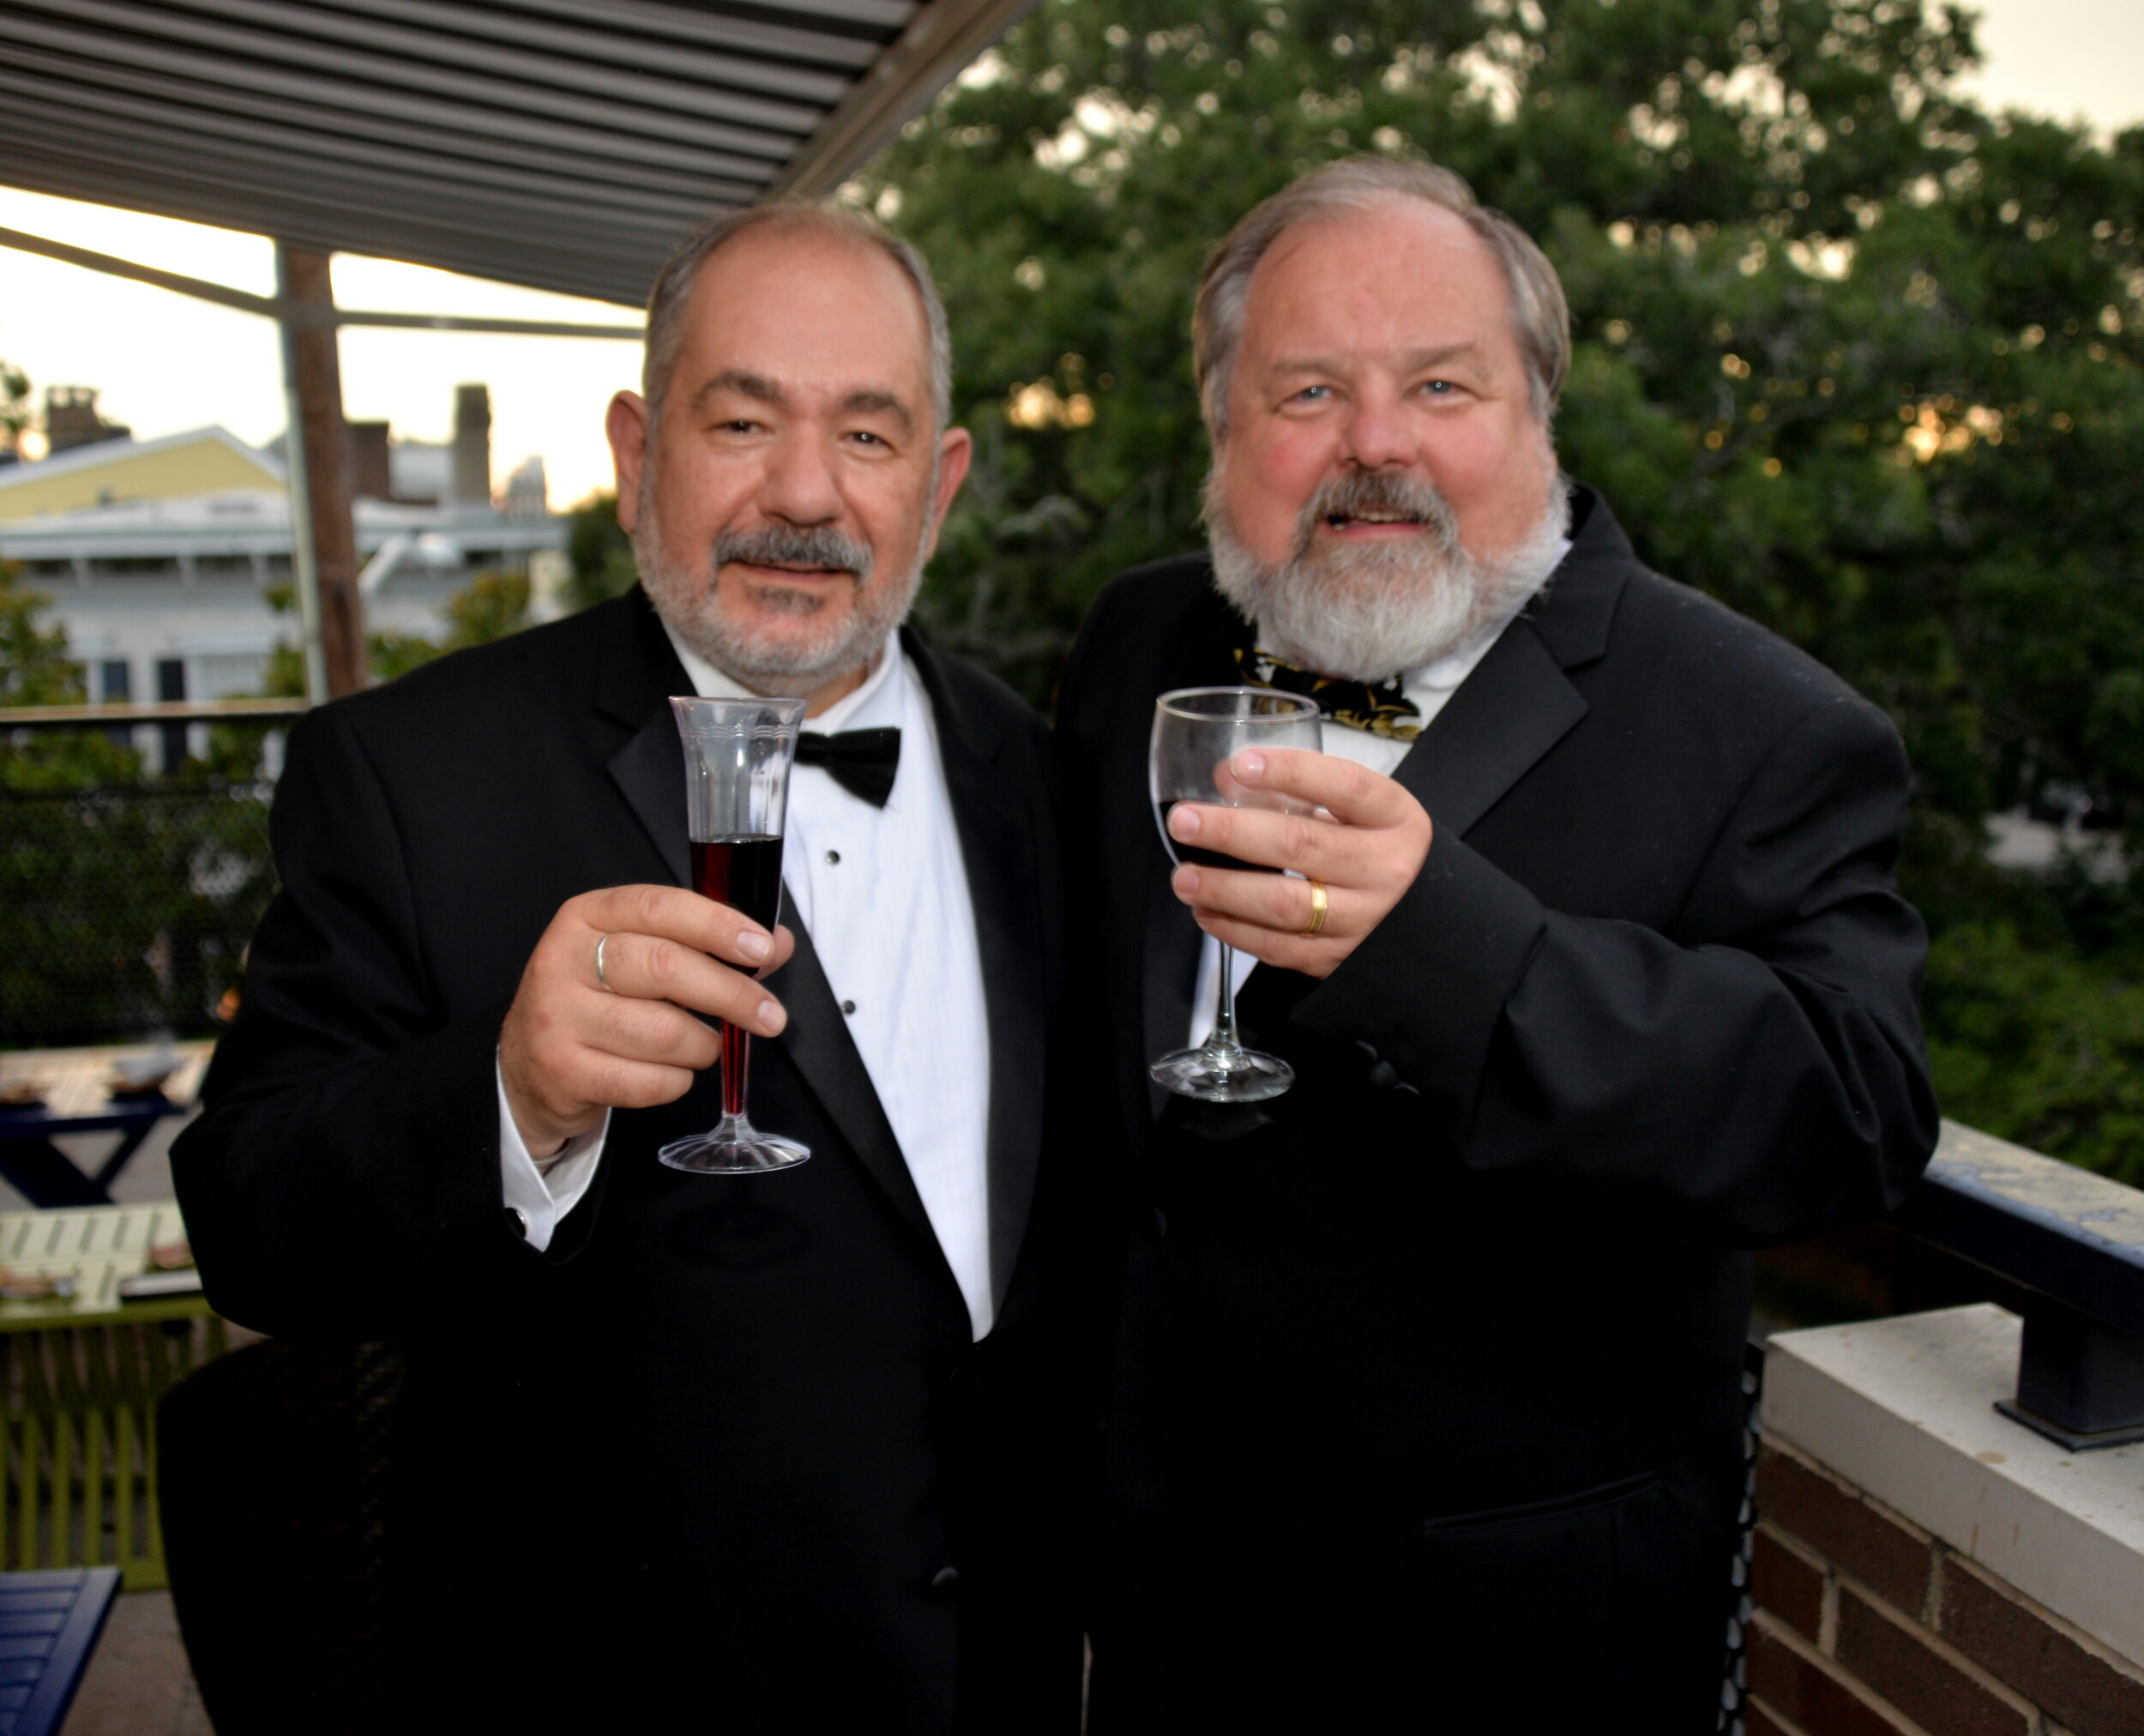 Richard and Andy at a friend's 20th anniversary vow renewal party in Savannah. Photo by Bunny Ware.